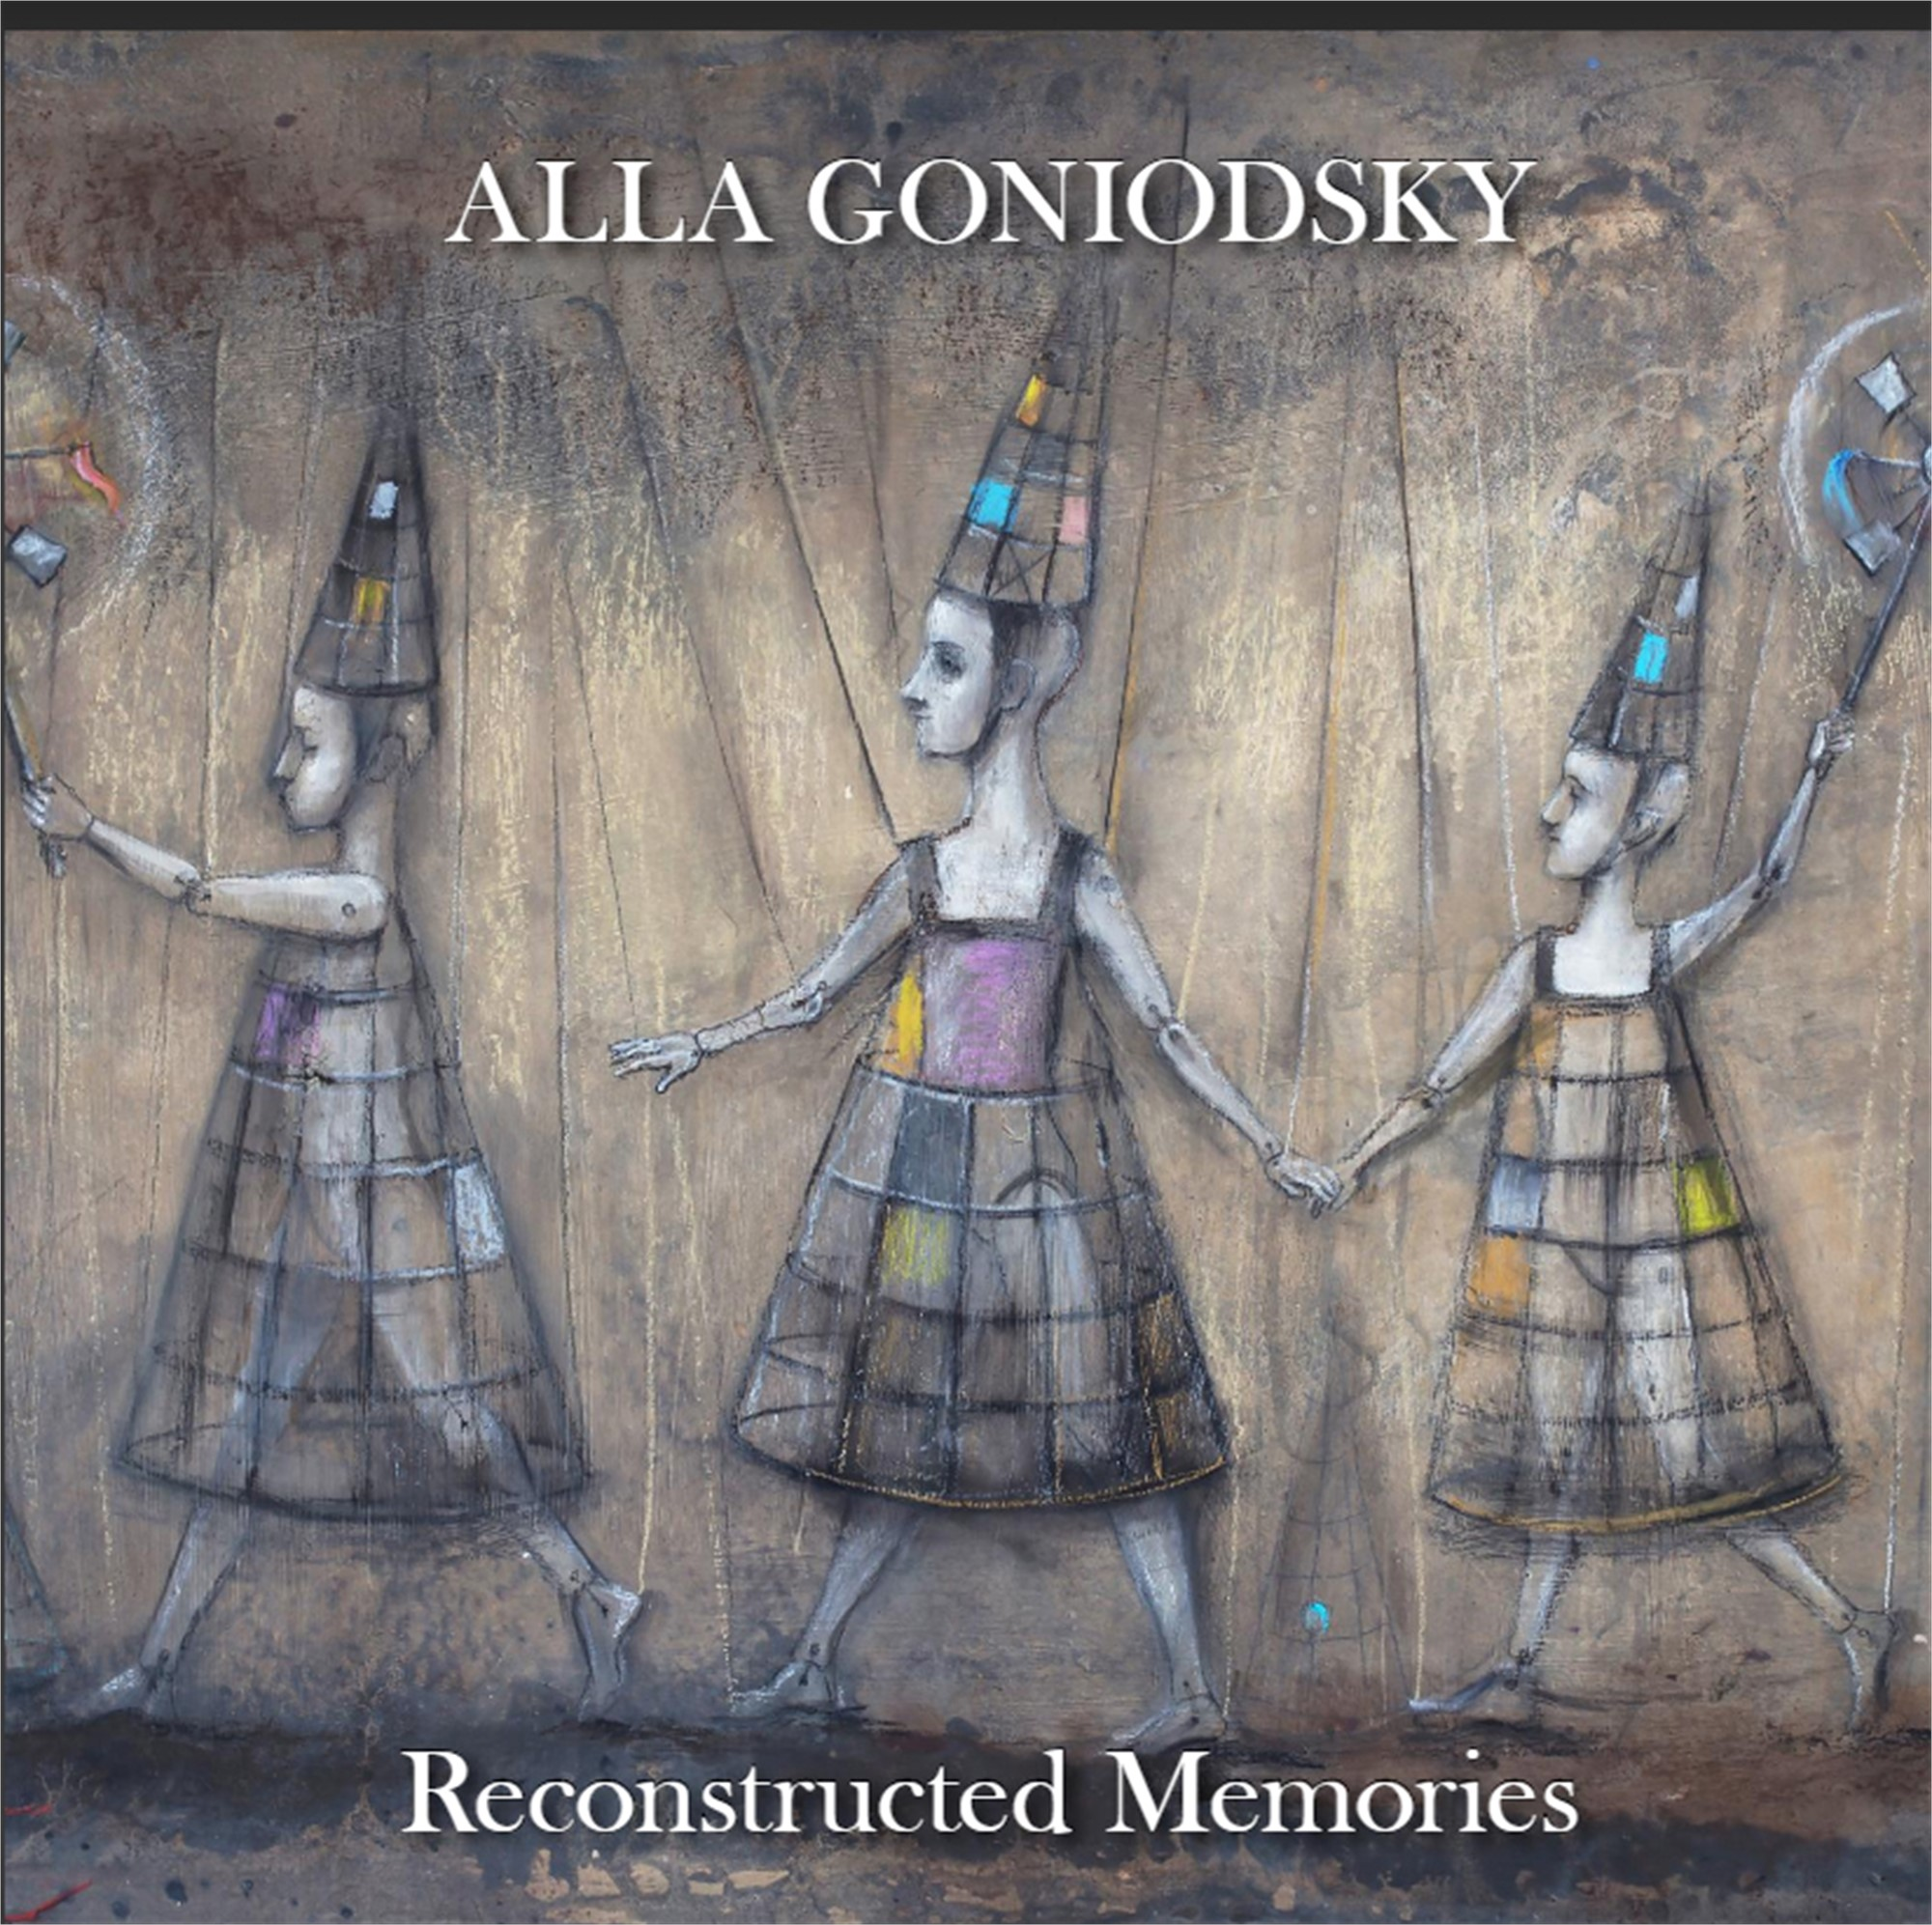 Reconstructed Memories | Alla Goniodsky by Alla Goniodsky